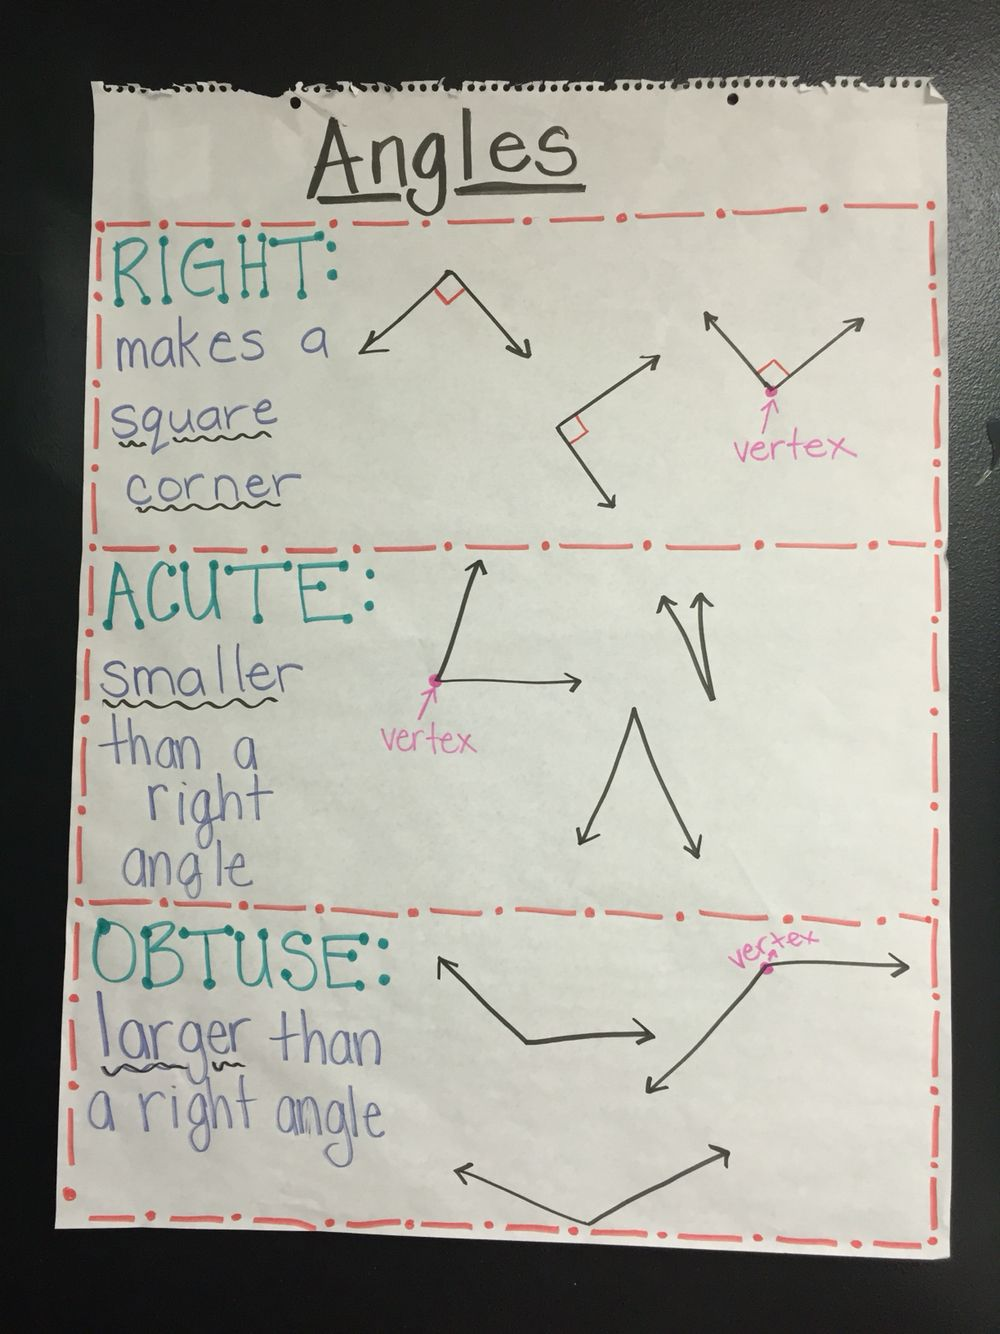 types of angles anchor chart right angle acute angle and obtuse angle anchor charts. Black Bedroom Furniture Sets. Home Design Ideas